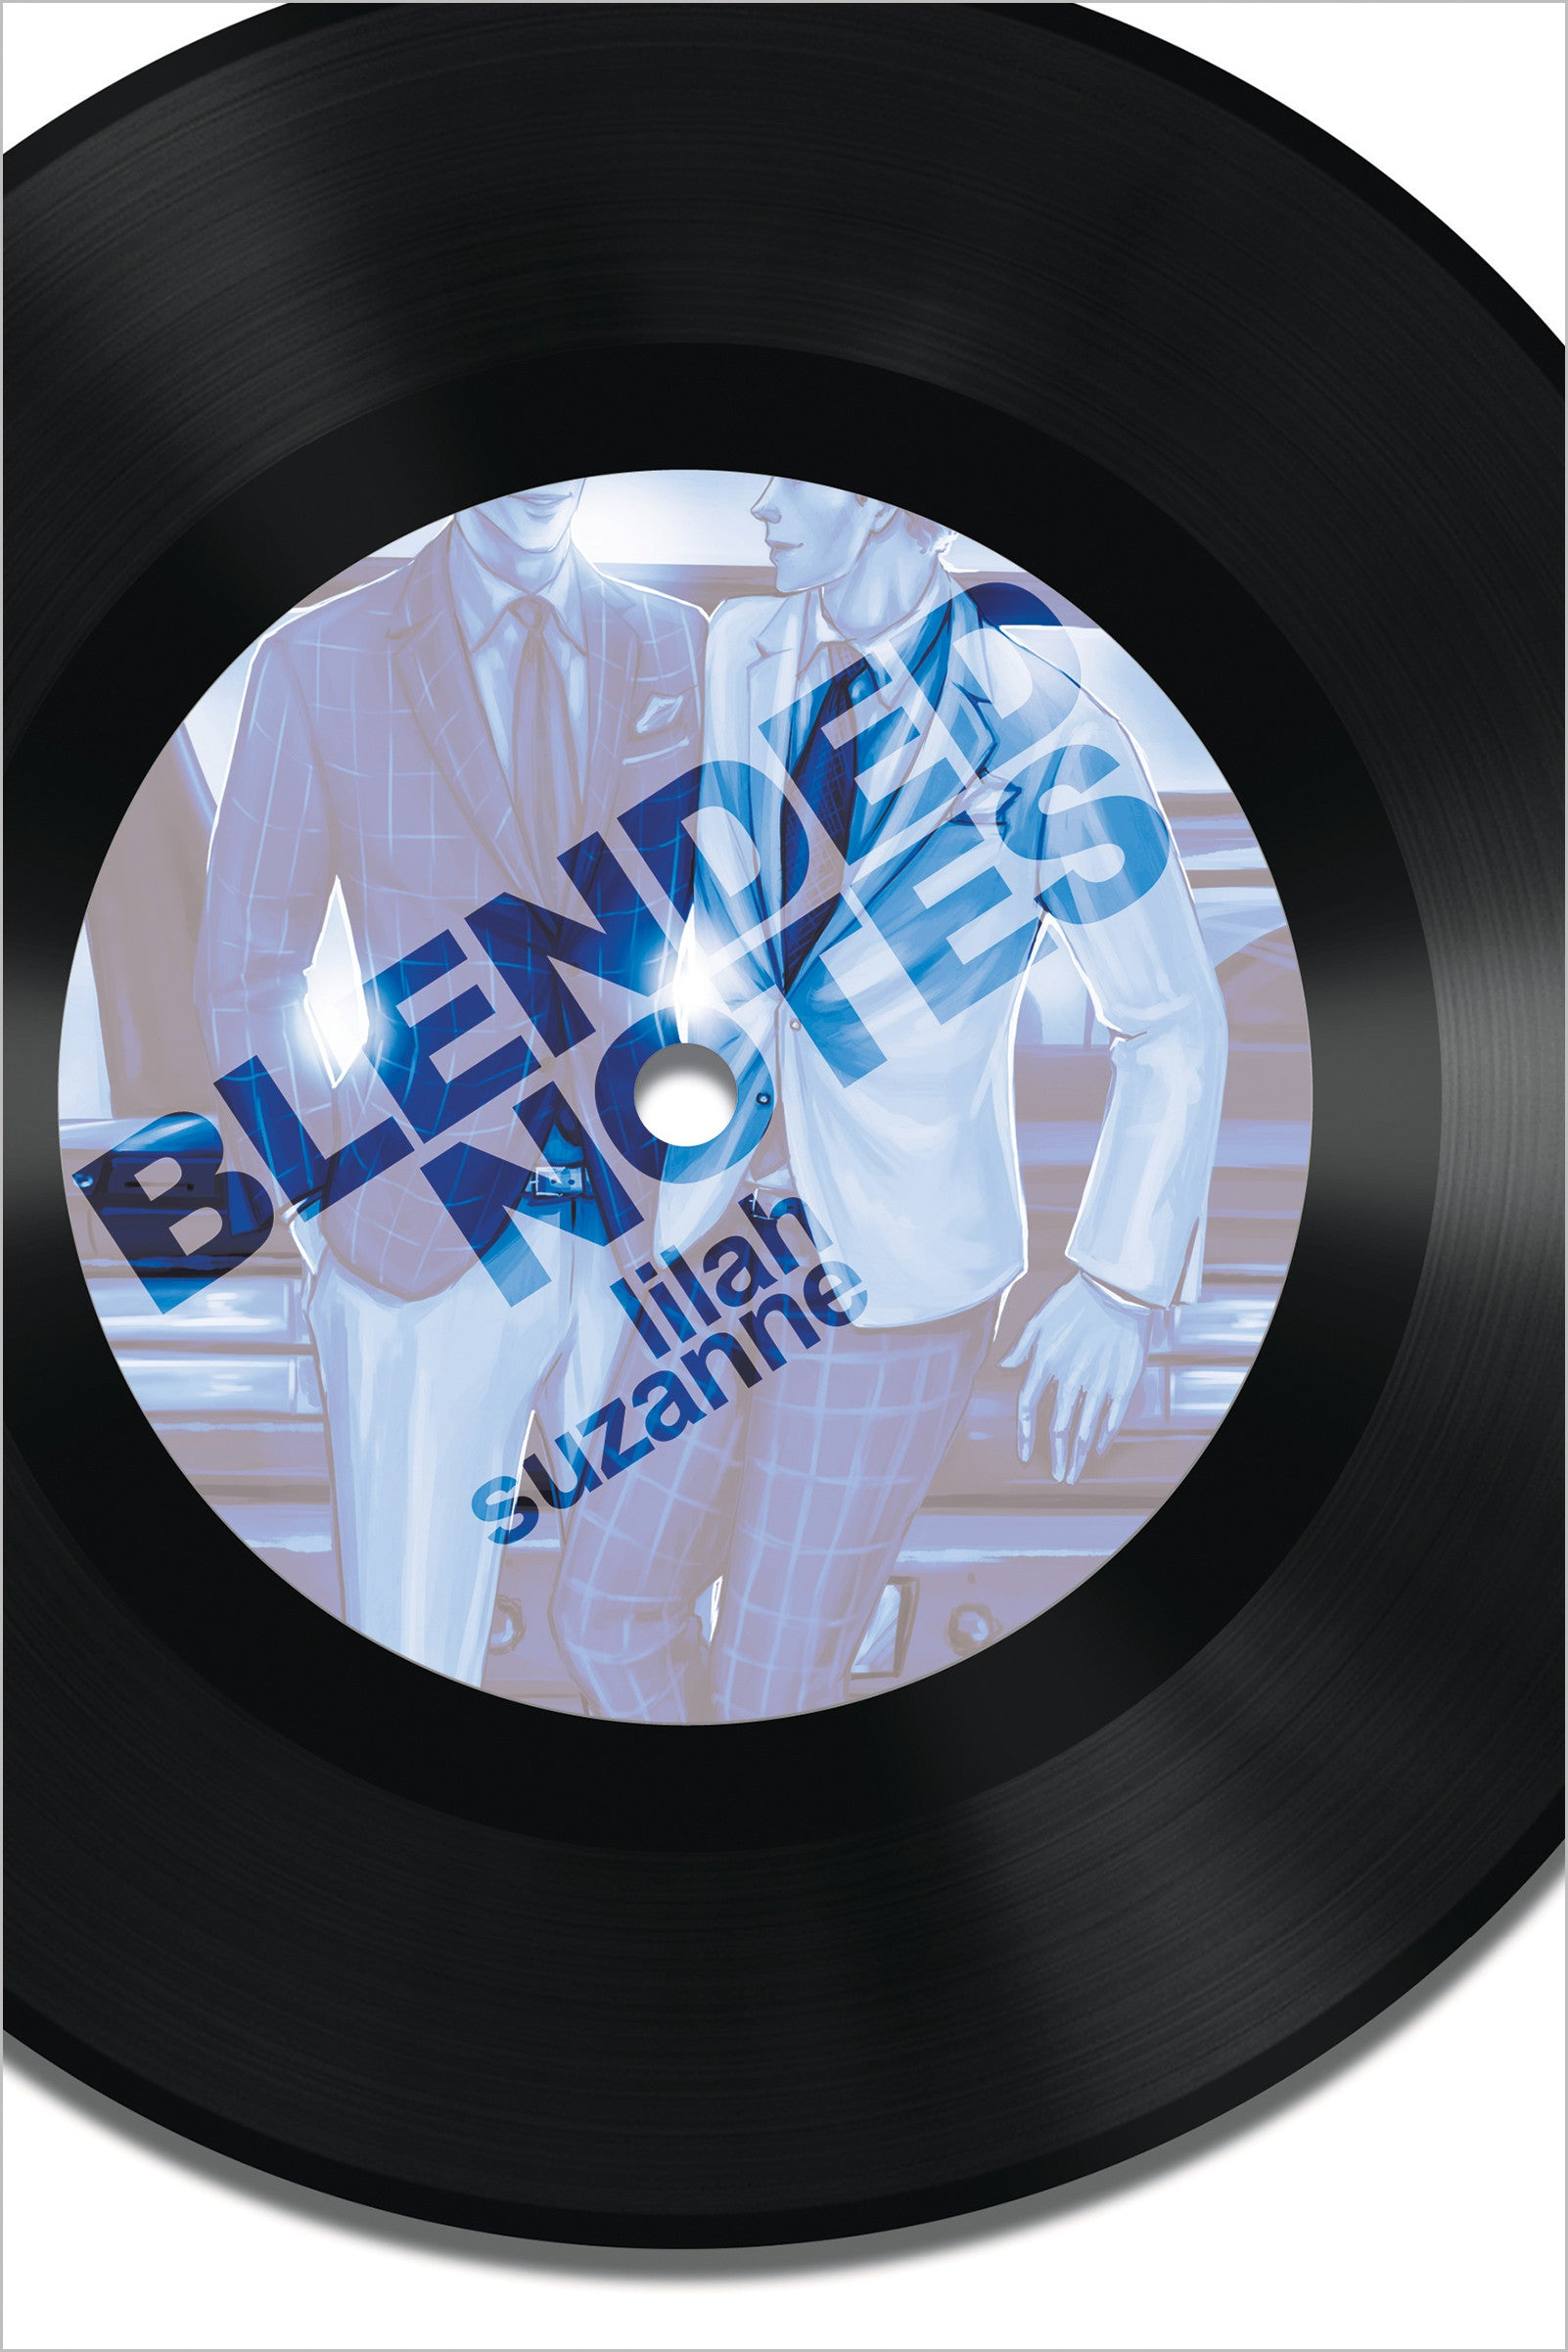 Blended Notes (print edition)